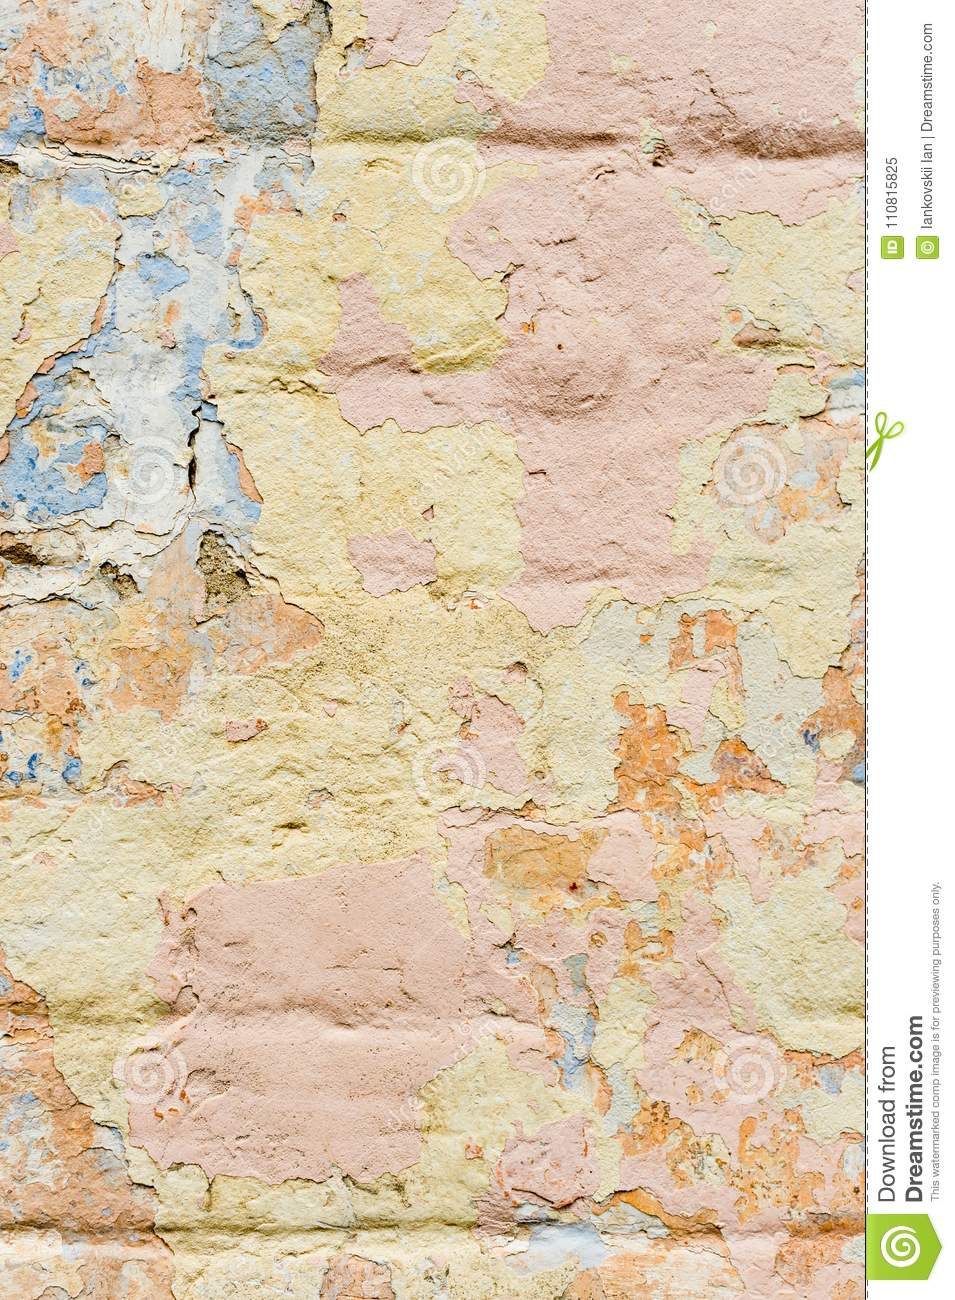 Close-up Textured Background Of Multi-layer Flaking Paint On The ...